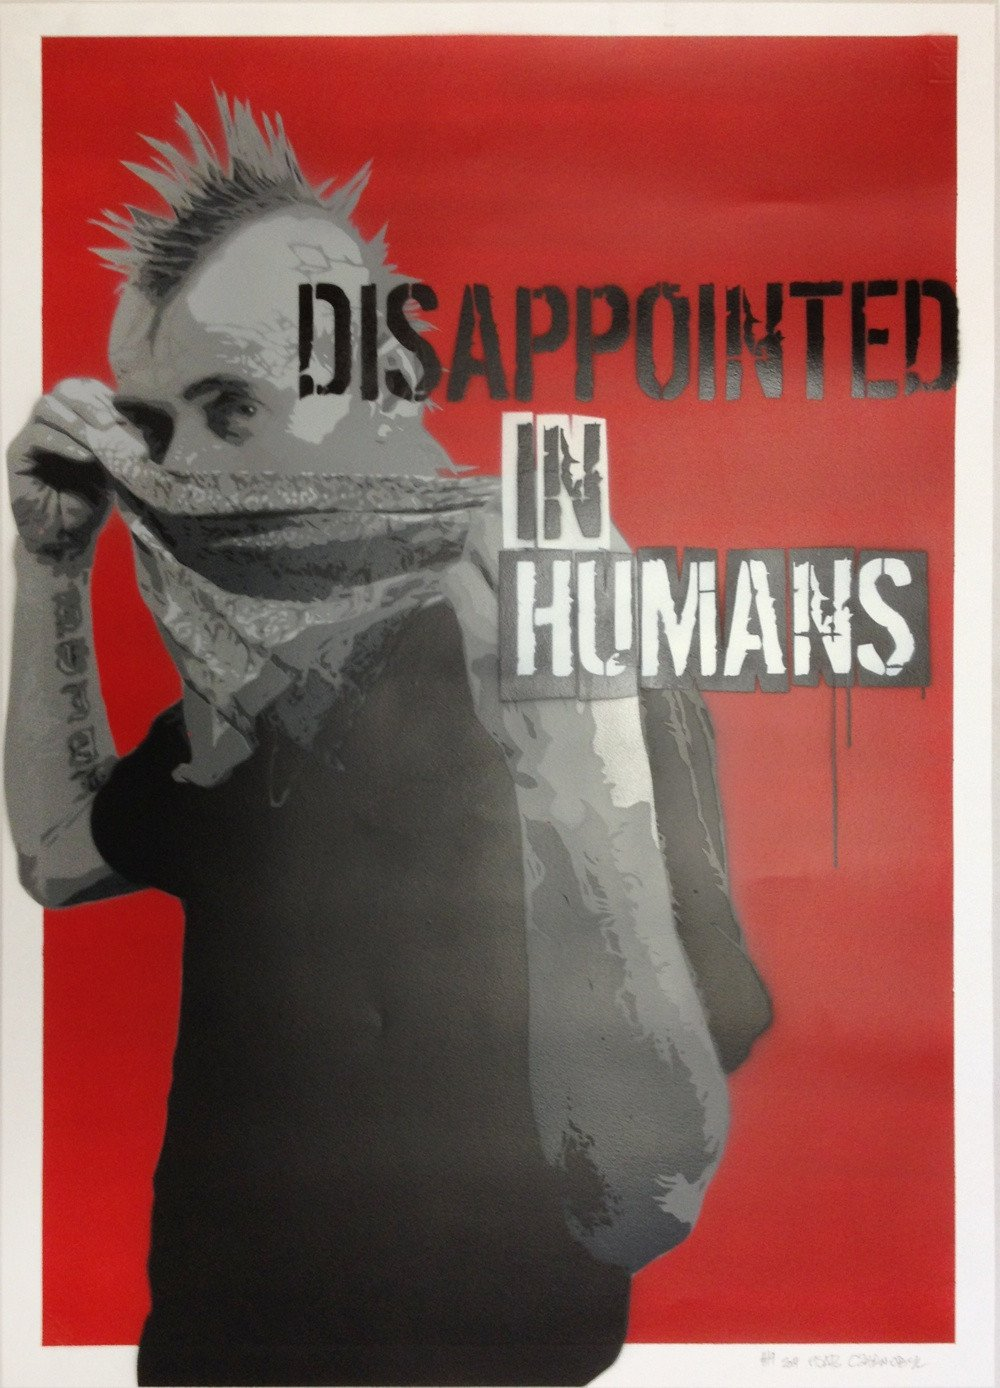 Czarnobyl X-ter & Pisa73: Disappointed in Humans #19 - prettyportal artshop, limited edition prints, urban contemporary art, streetart